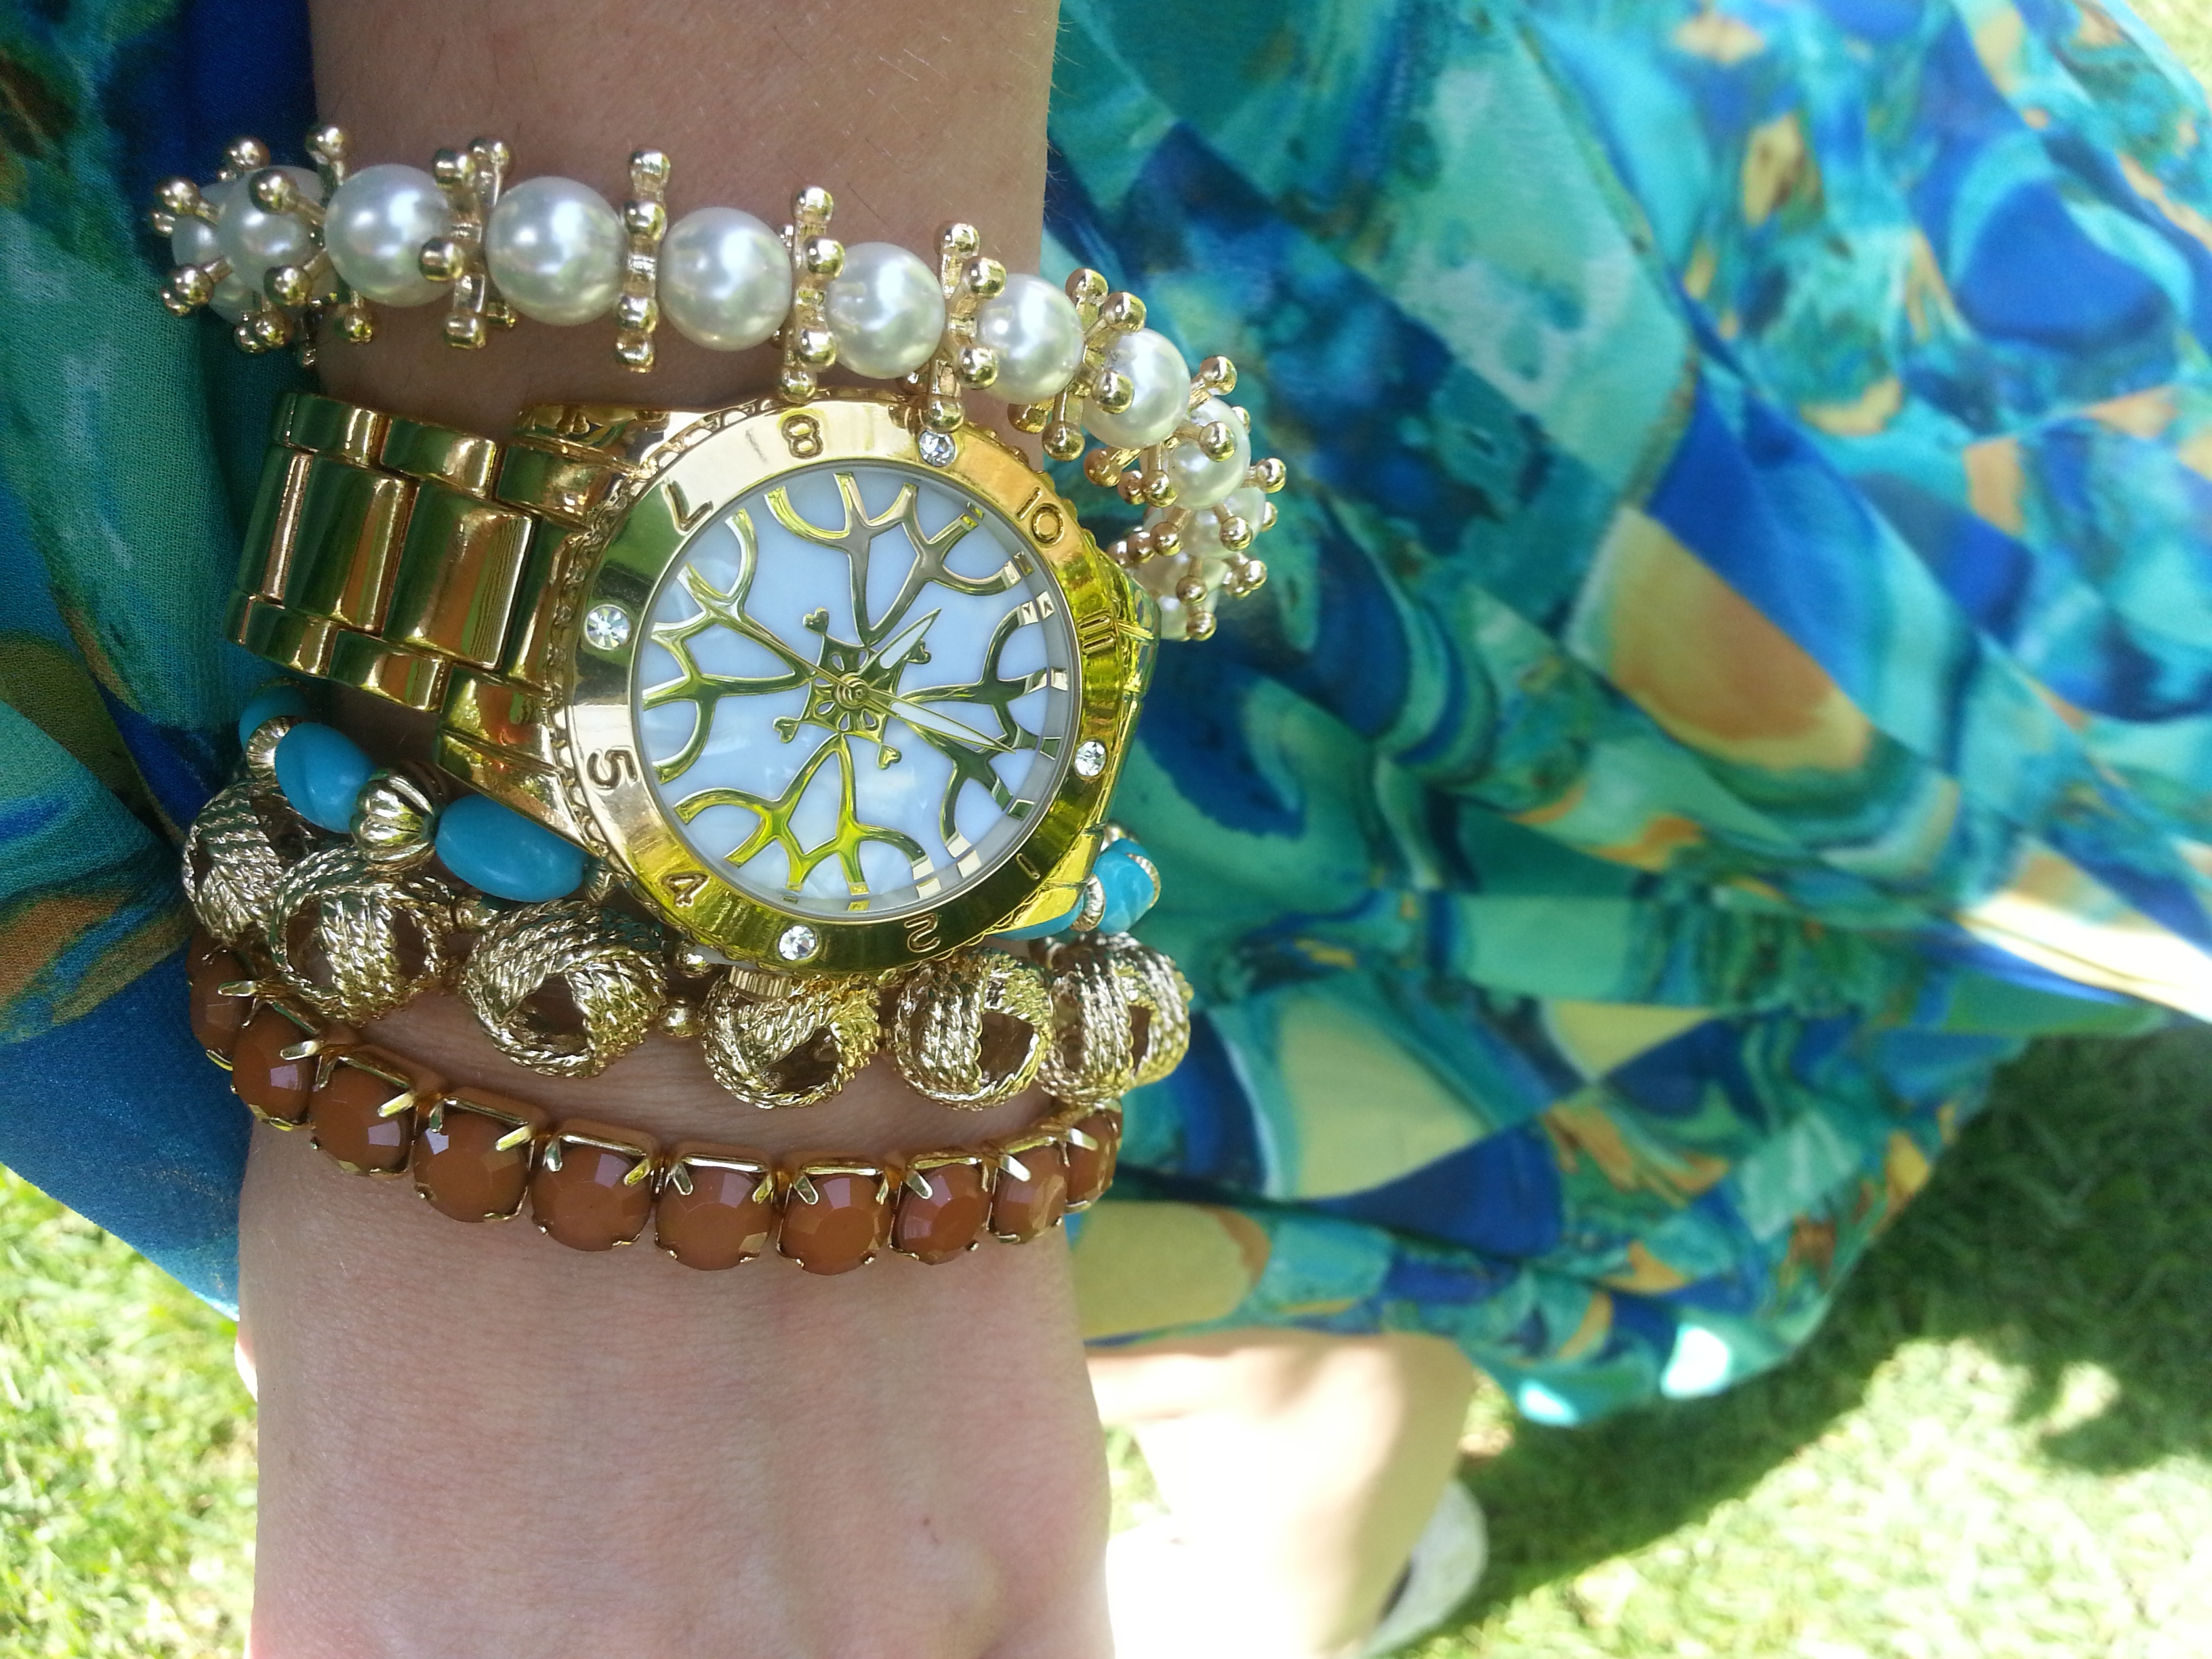 Arm Party with mark. Glimmer and Gleam Bracelets and Avon Signature Watch